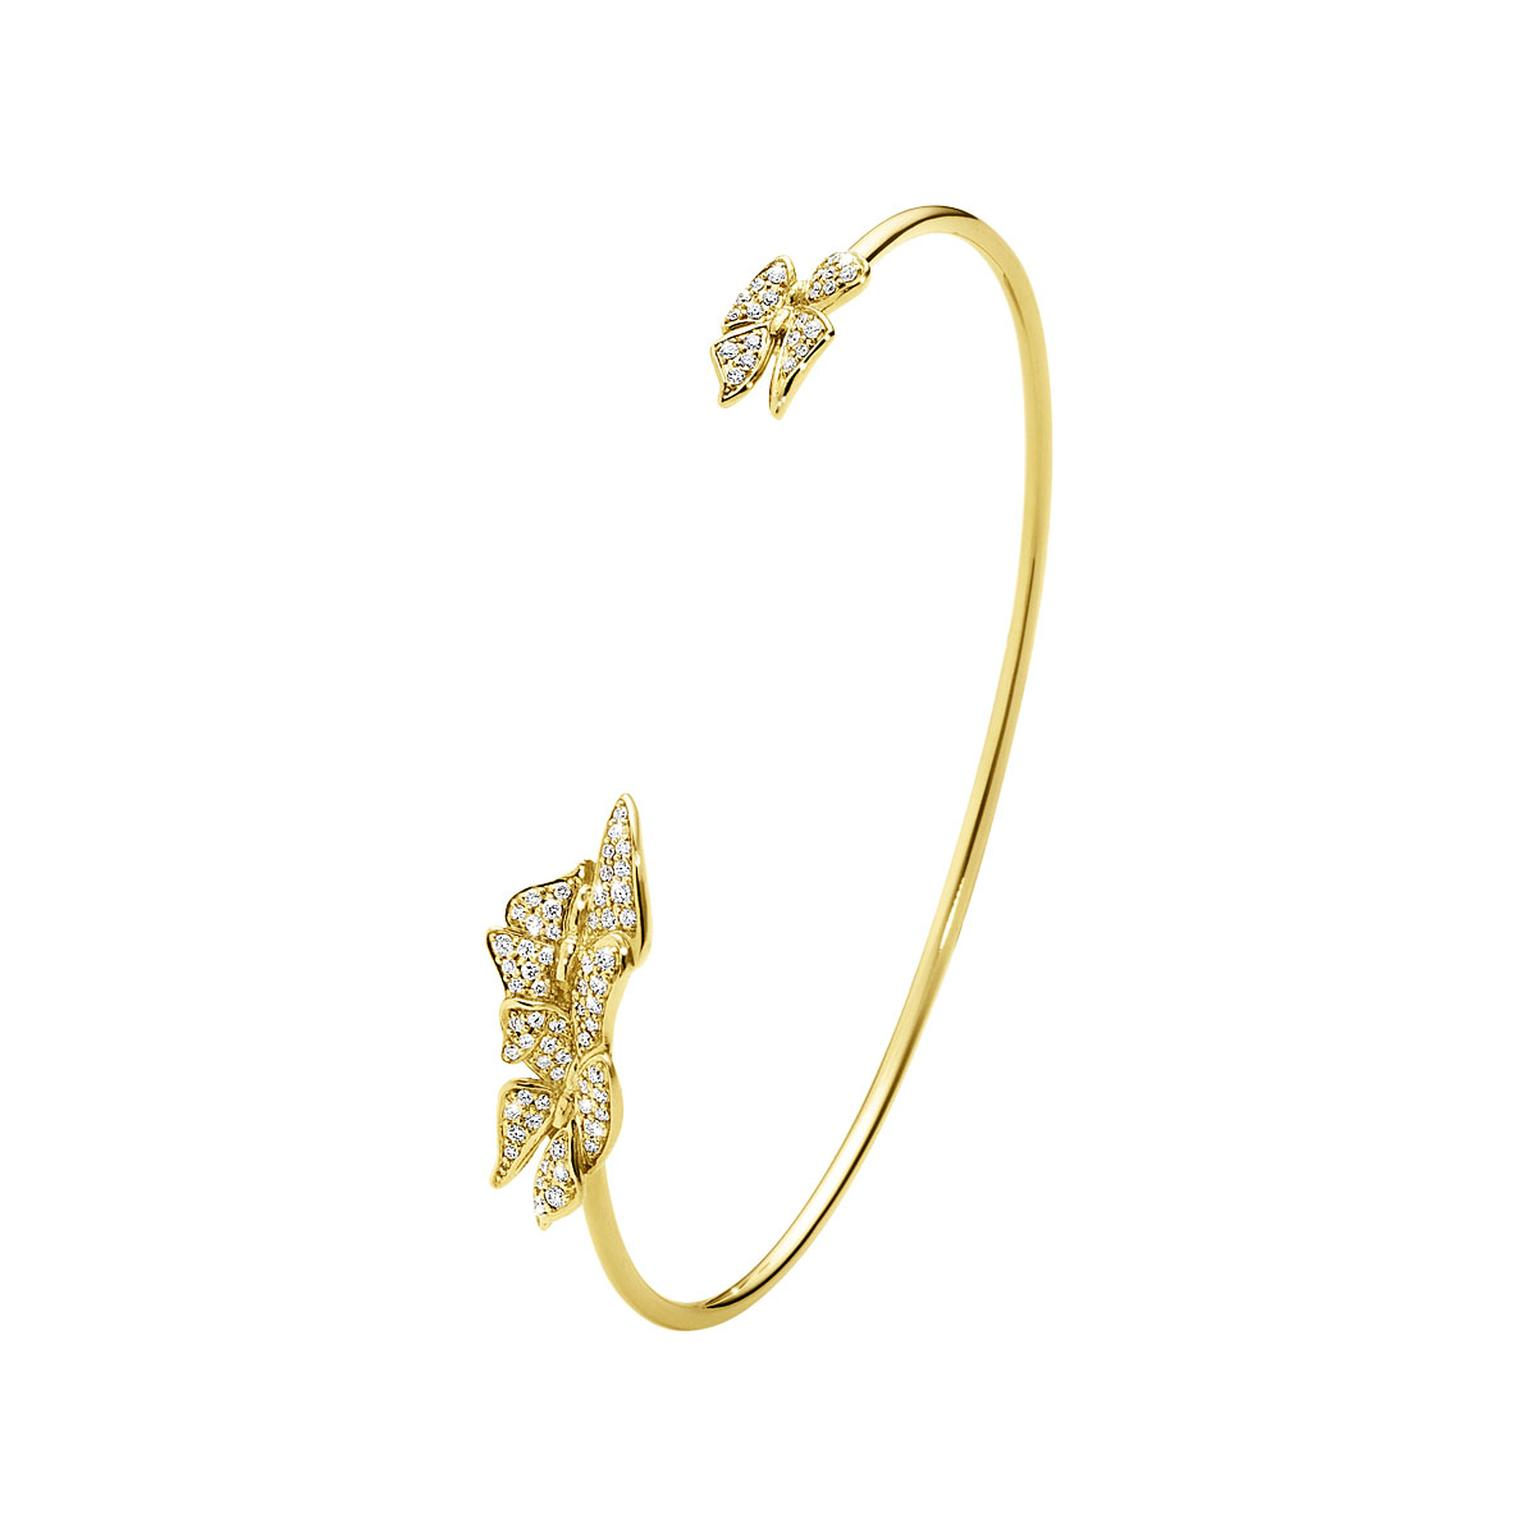 Georg Jensen Askill bangle in yellow gold with brillian- cut diamonds